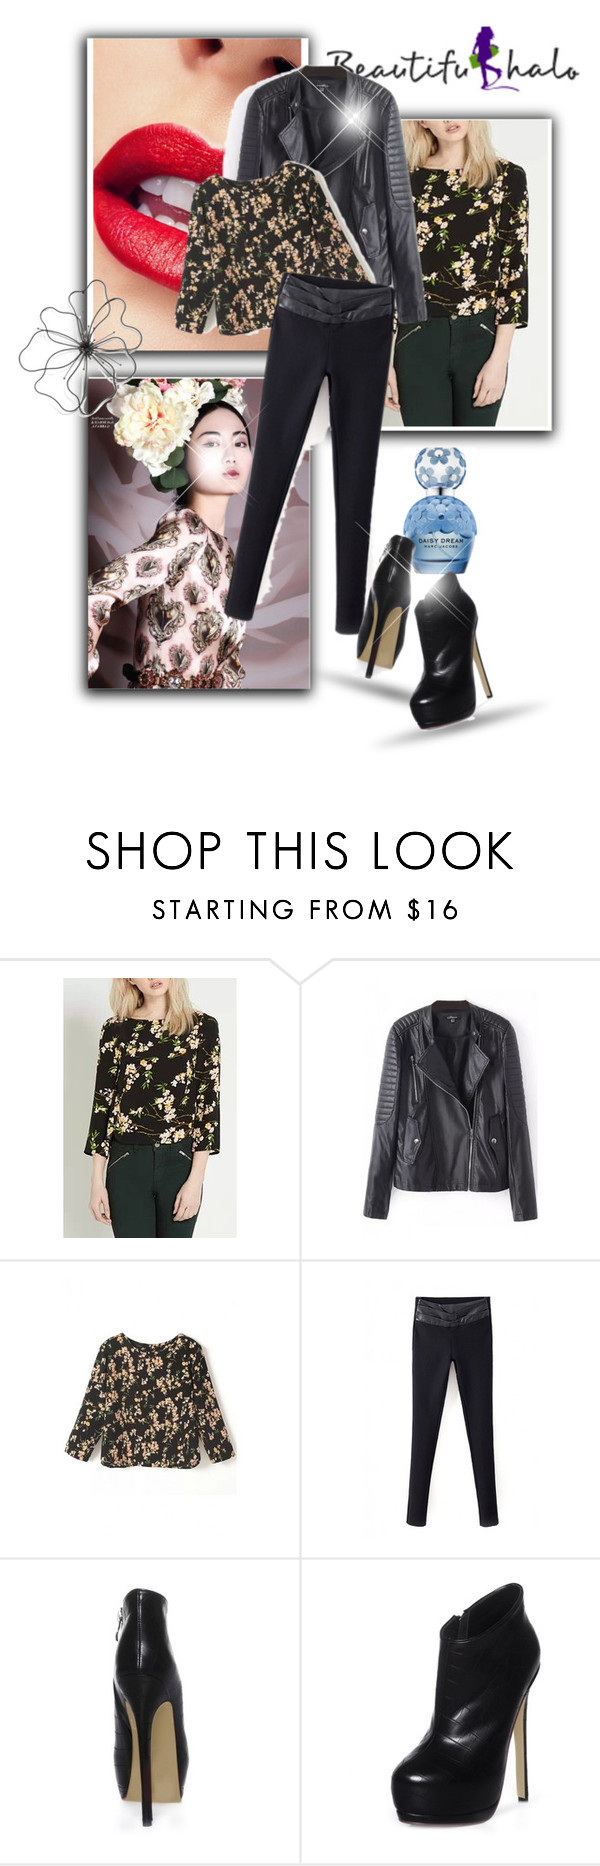 """""""BEAUTIFULHALO 1."""" by albinnaflower ❤ liked on Polyvore featuring Marc Jacobs and bhalo"""